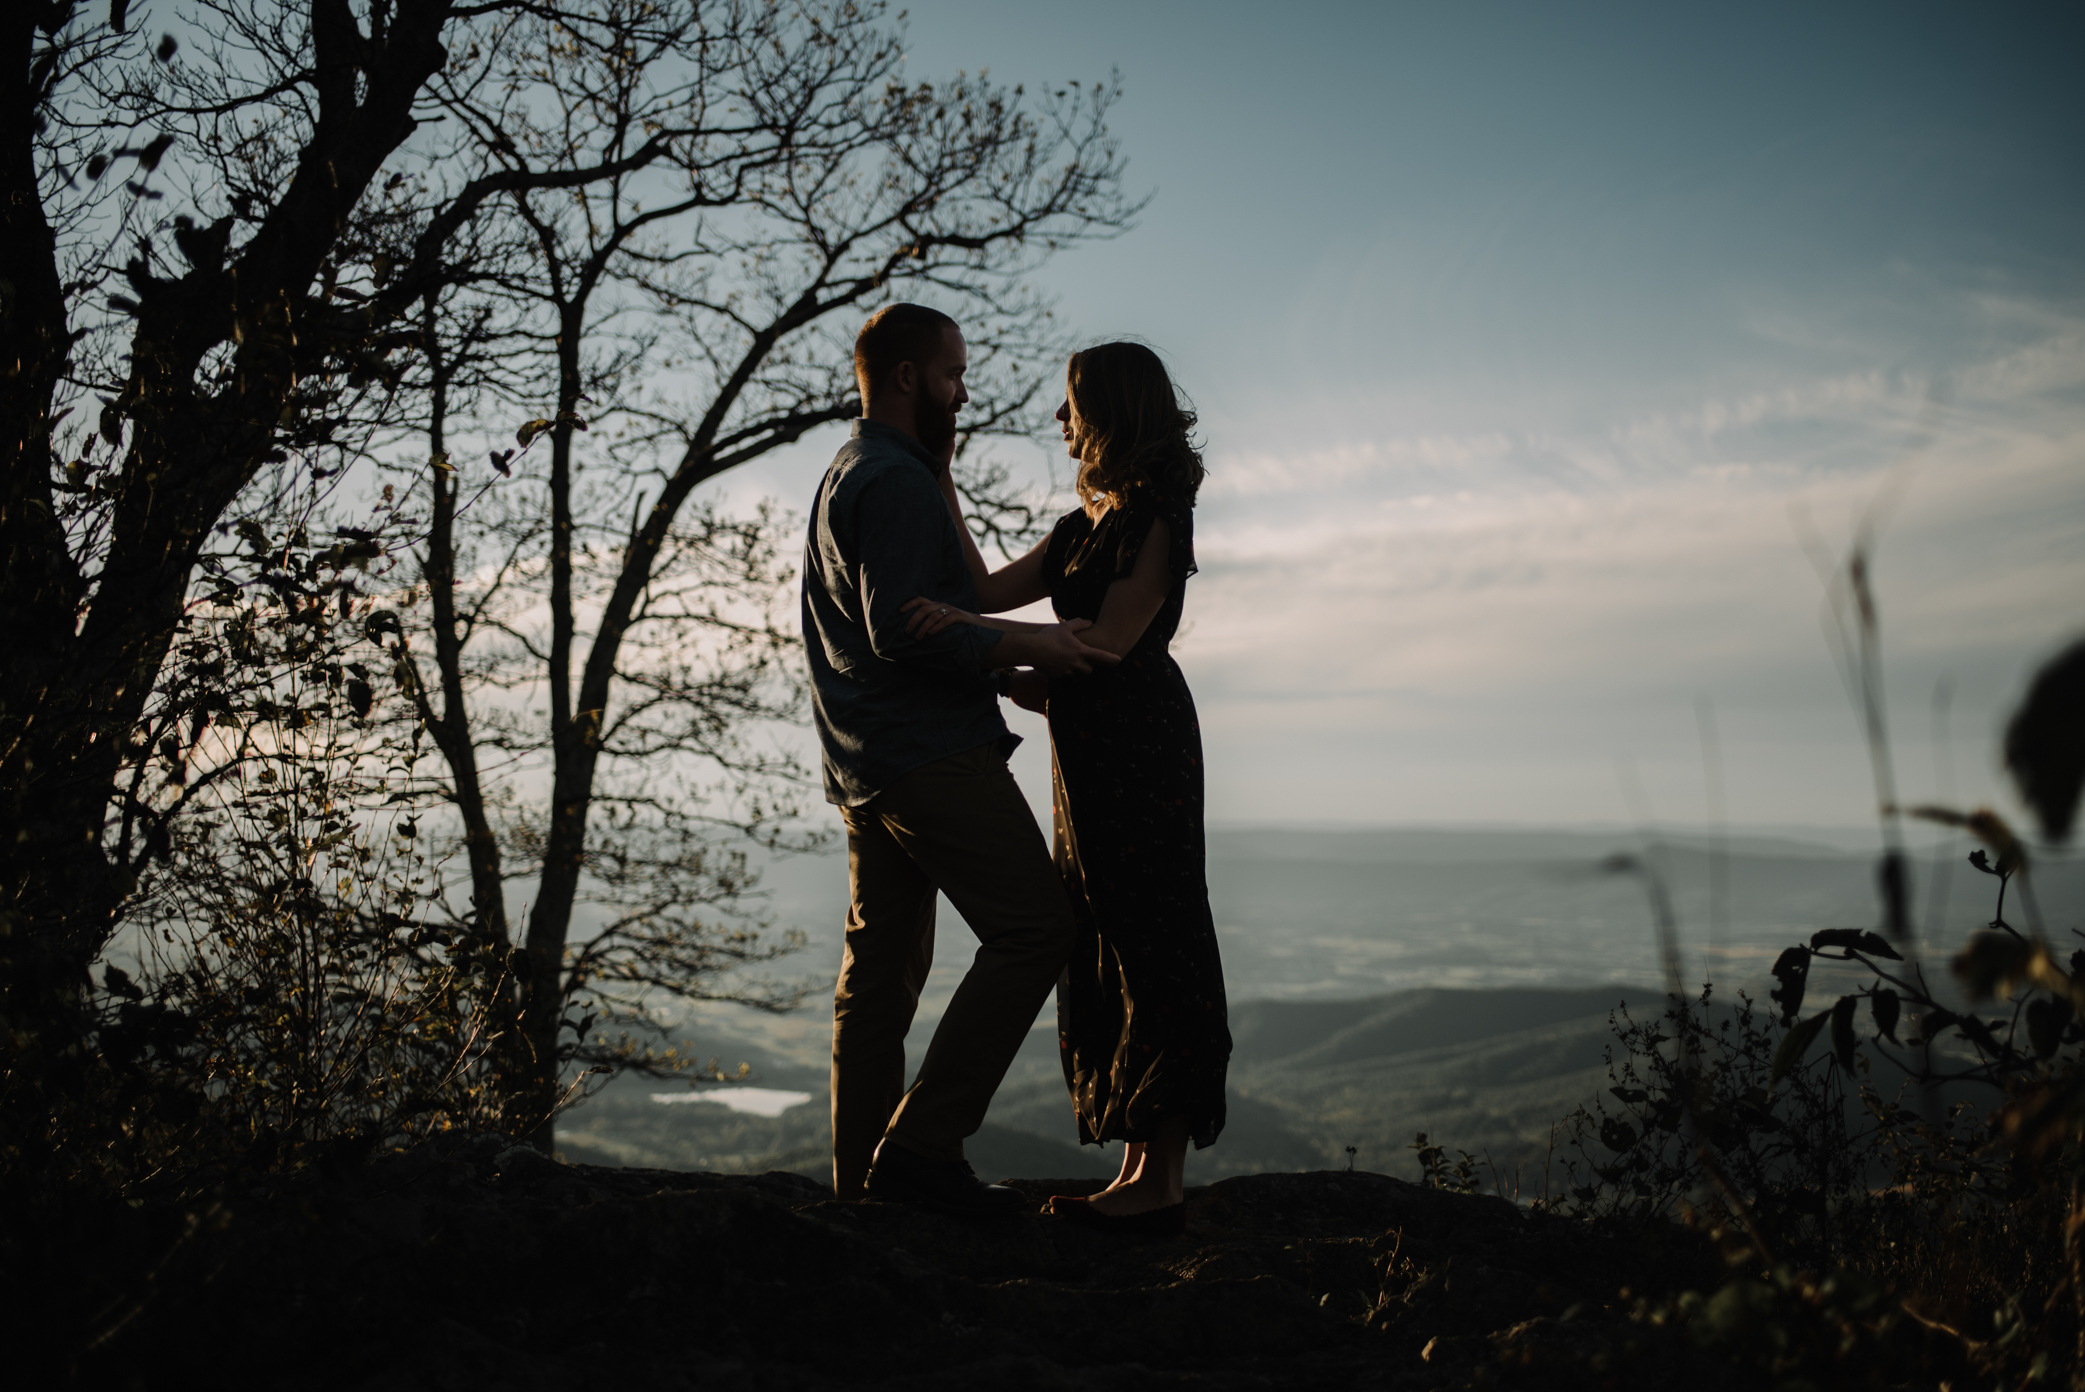 Molly and Zach Engagement Session - Fall Autumn Sunset Couple Adventure Session - Shenandoah National Park - Blue Ridge Parkway Skyline Drive - White Sails Creative_15.JPG